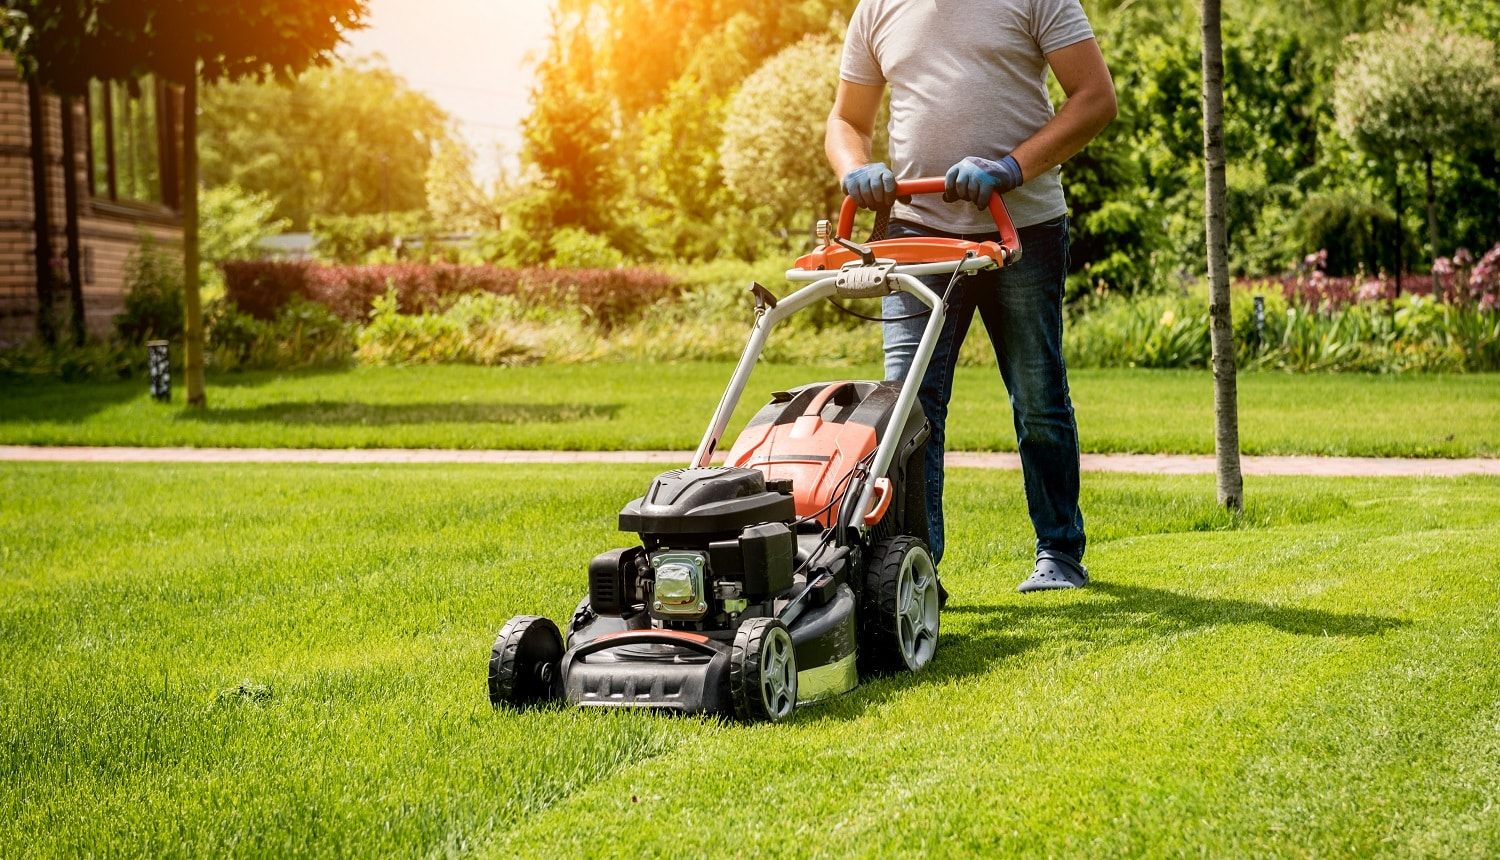 Gardener mowing the lawn. Landscape design. Gardening